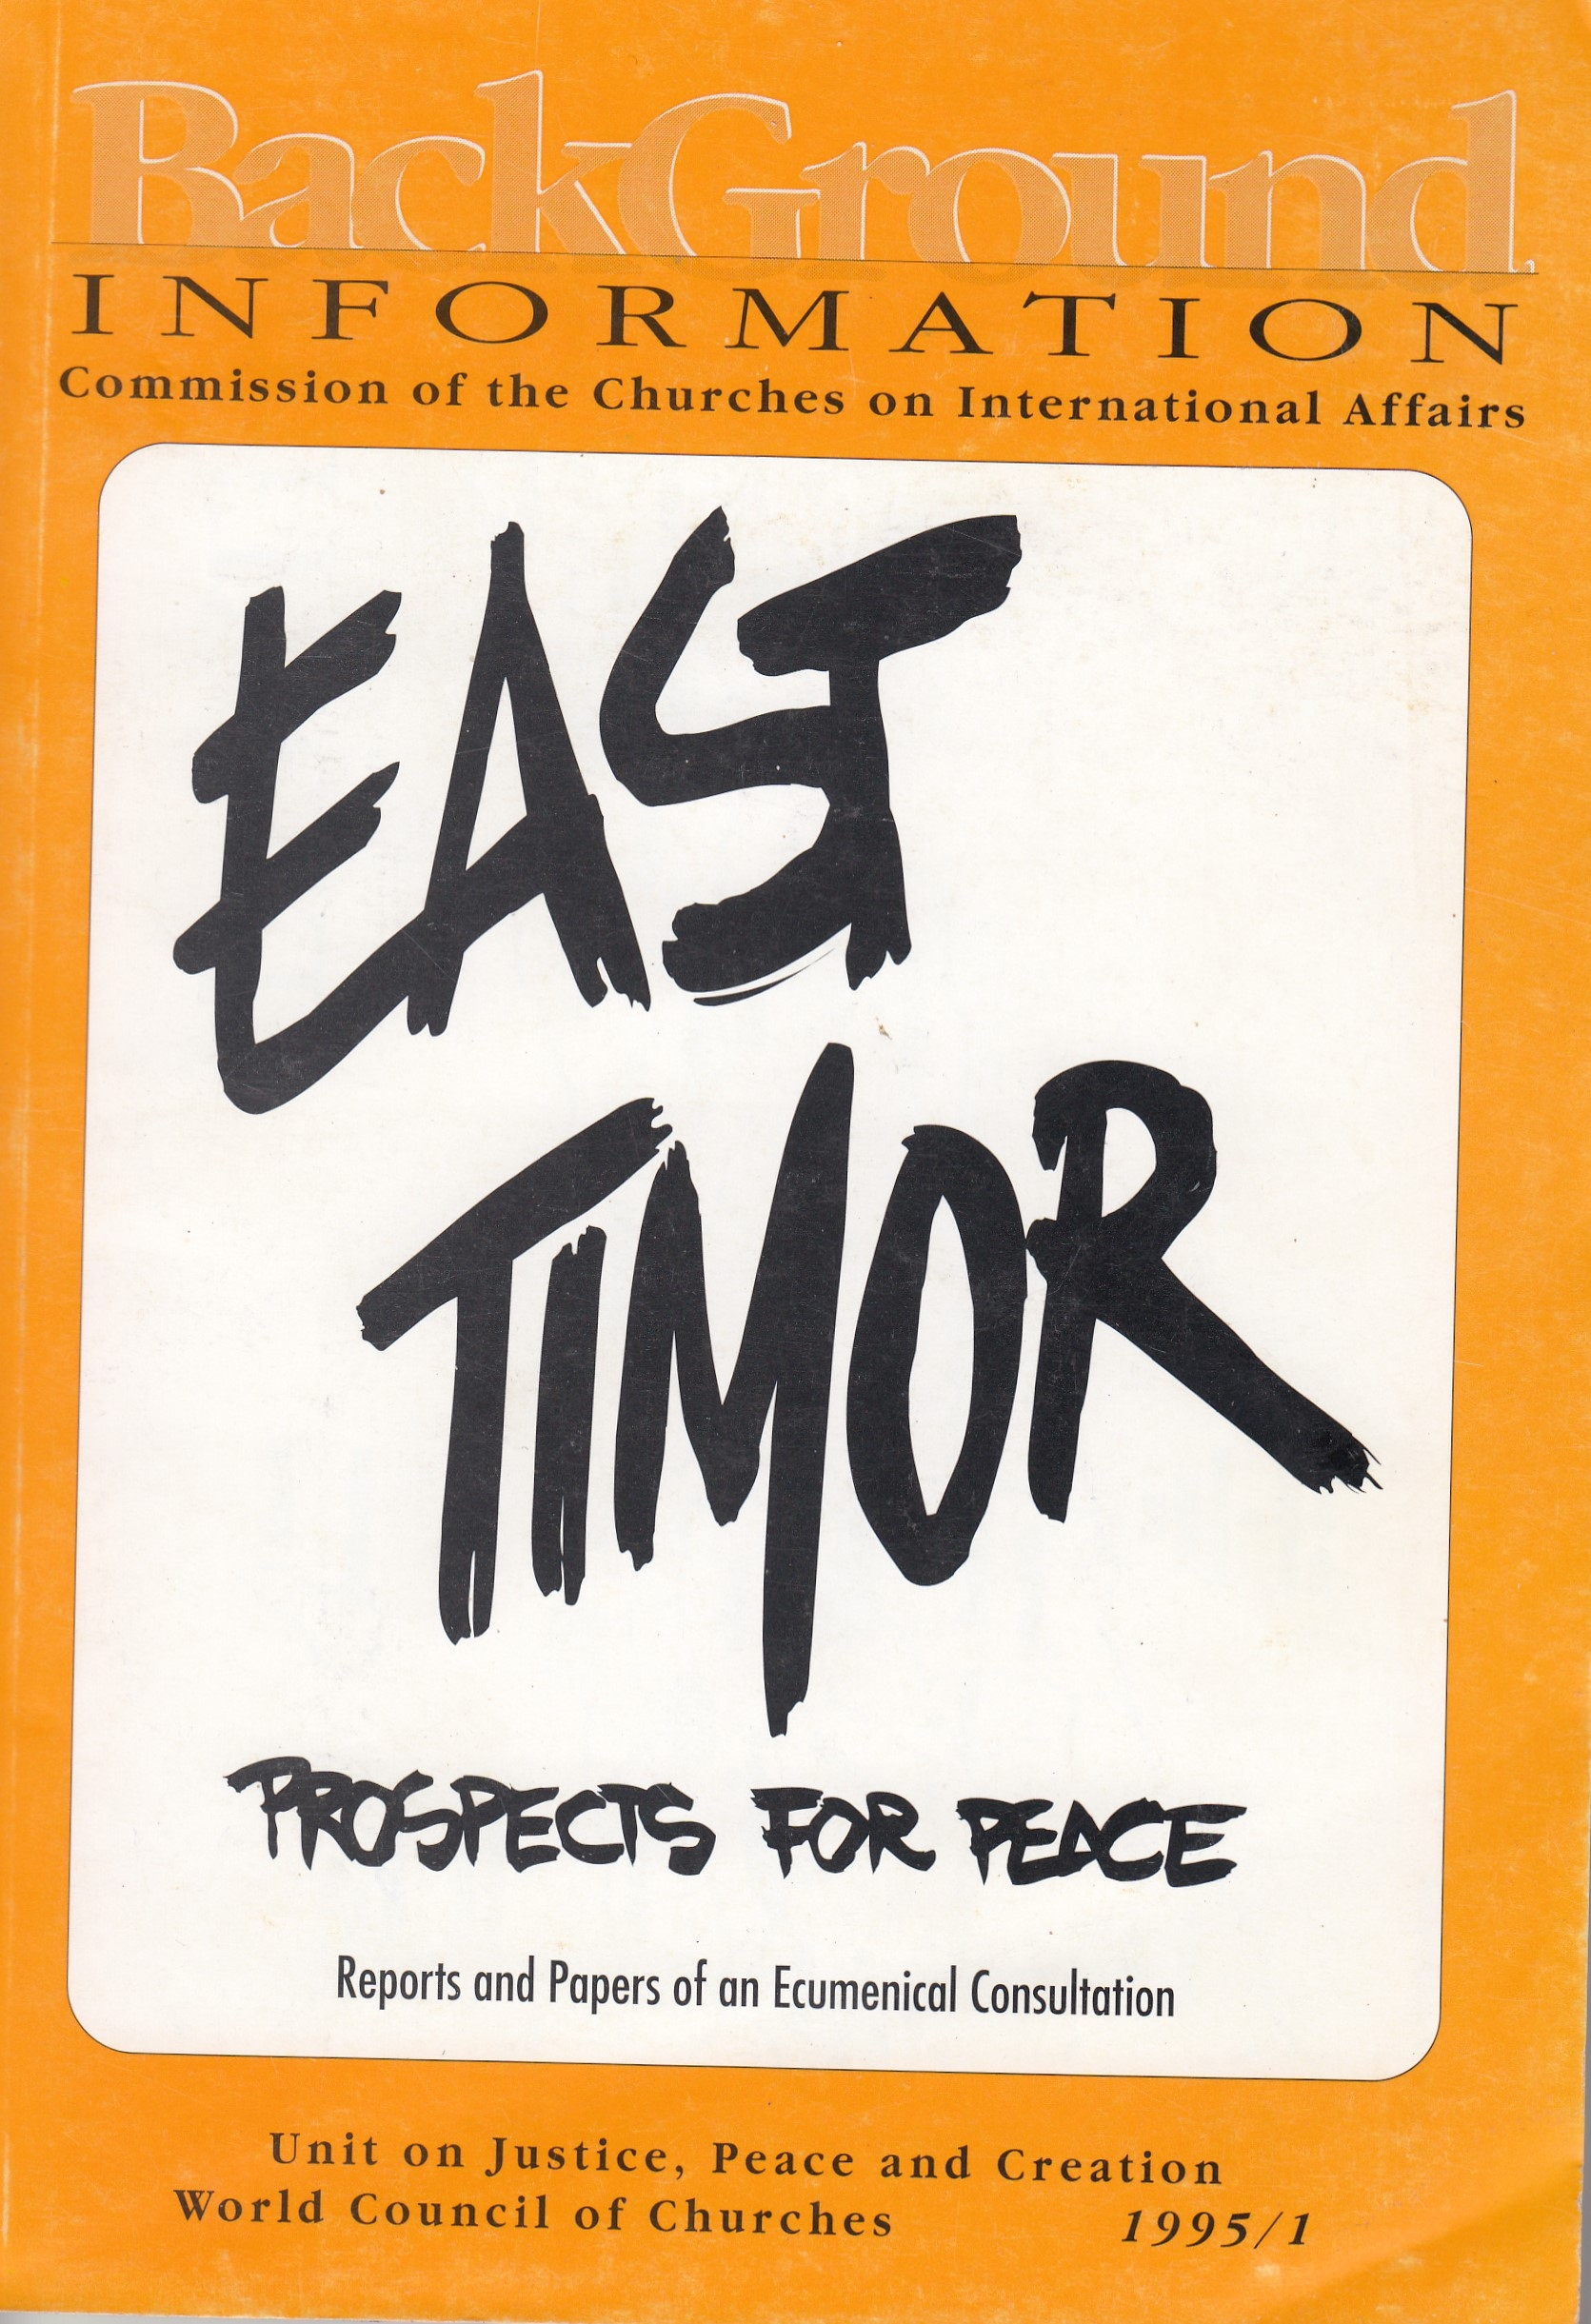 East Timor: Prospects for Peace